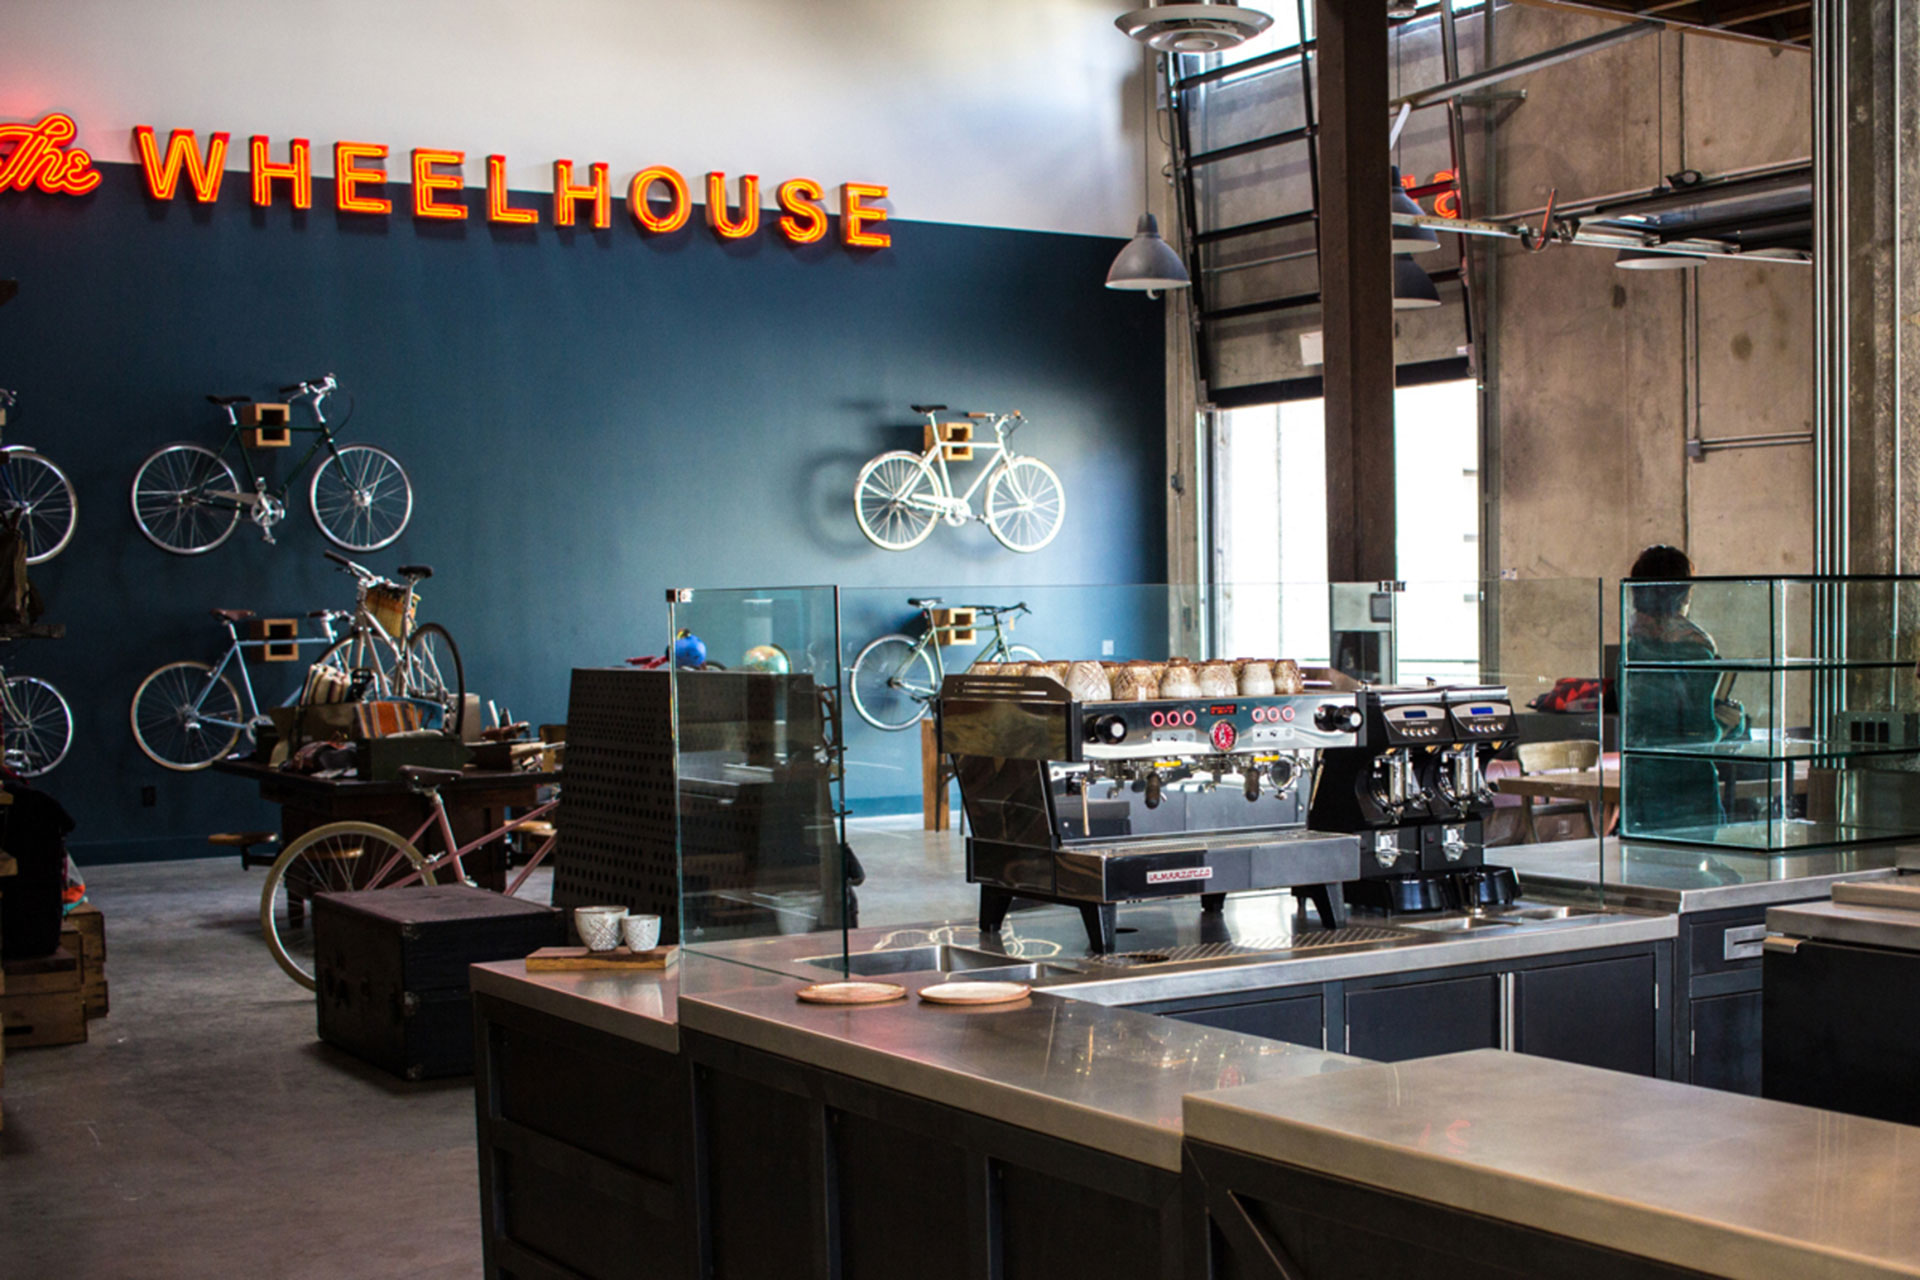 The Wheelhouse – Los Angeles, California